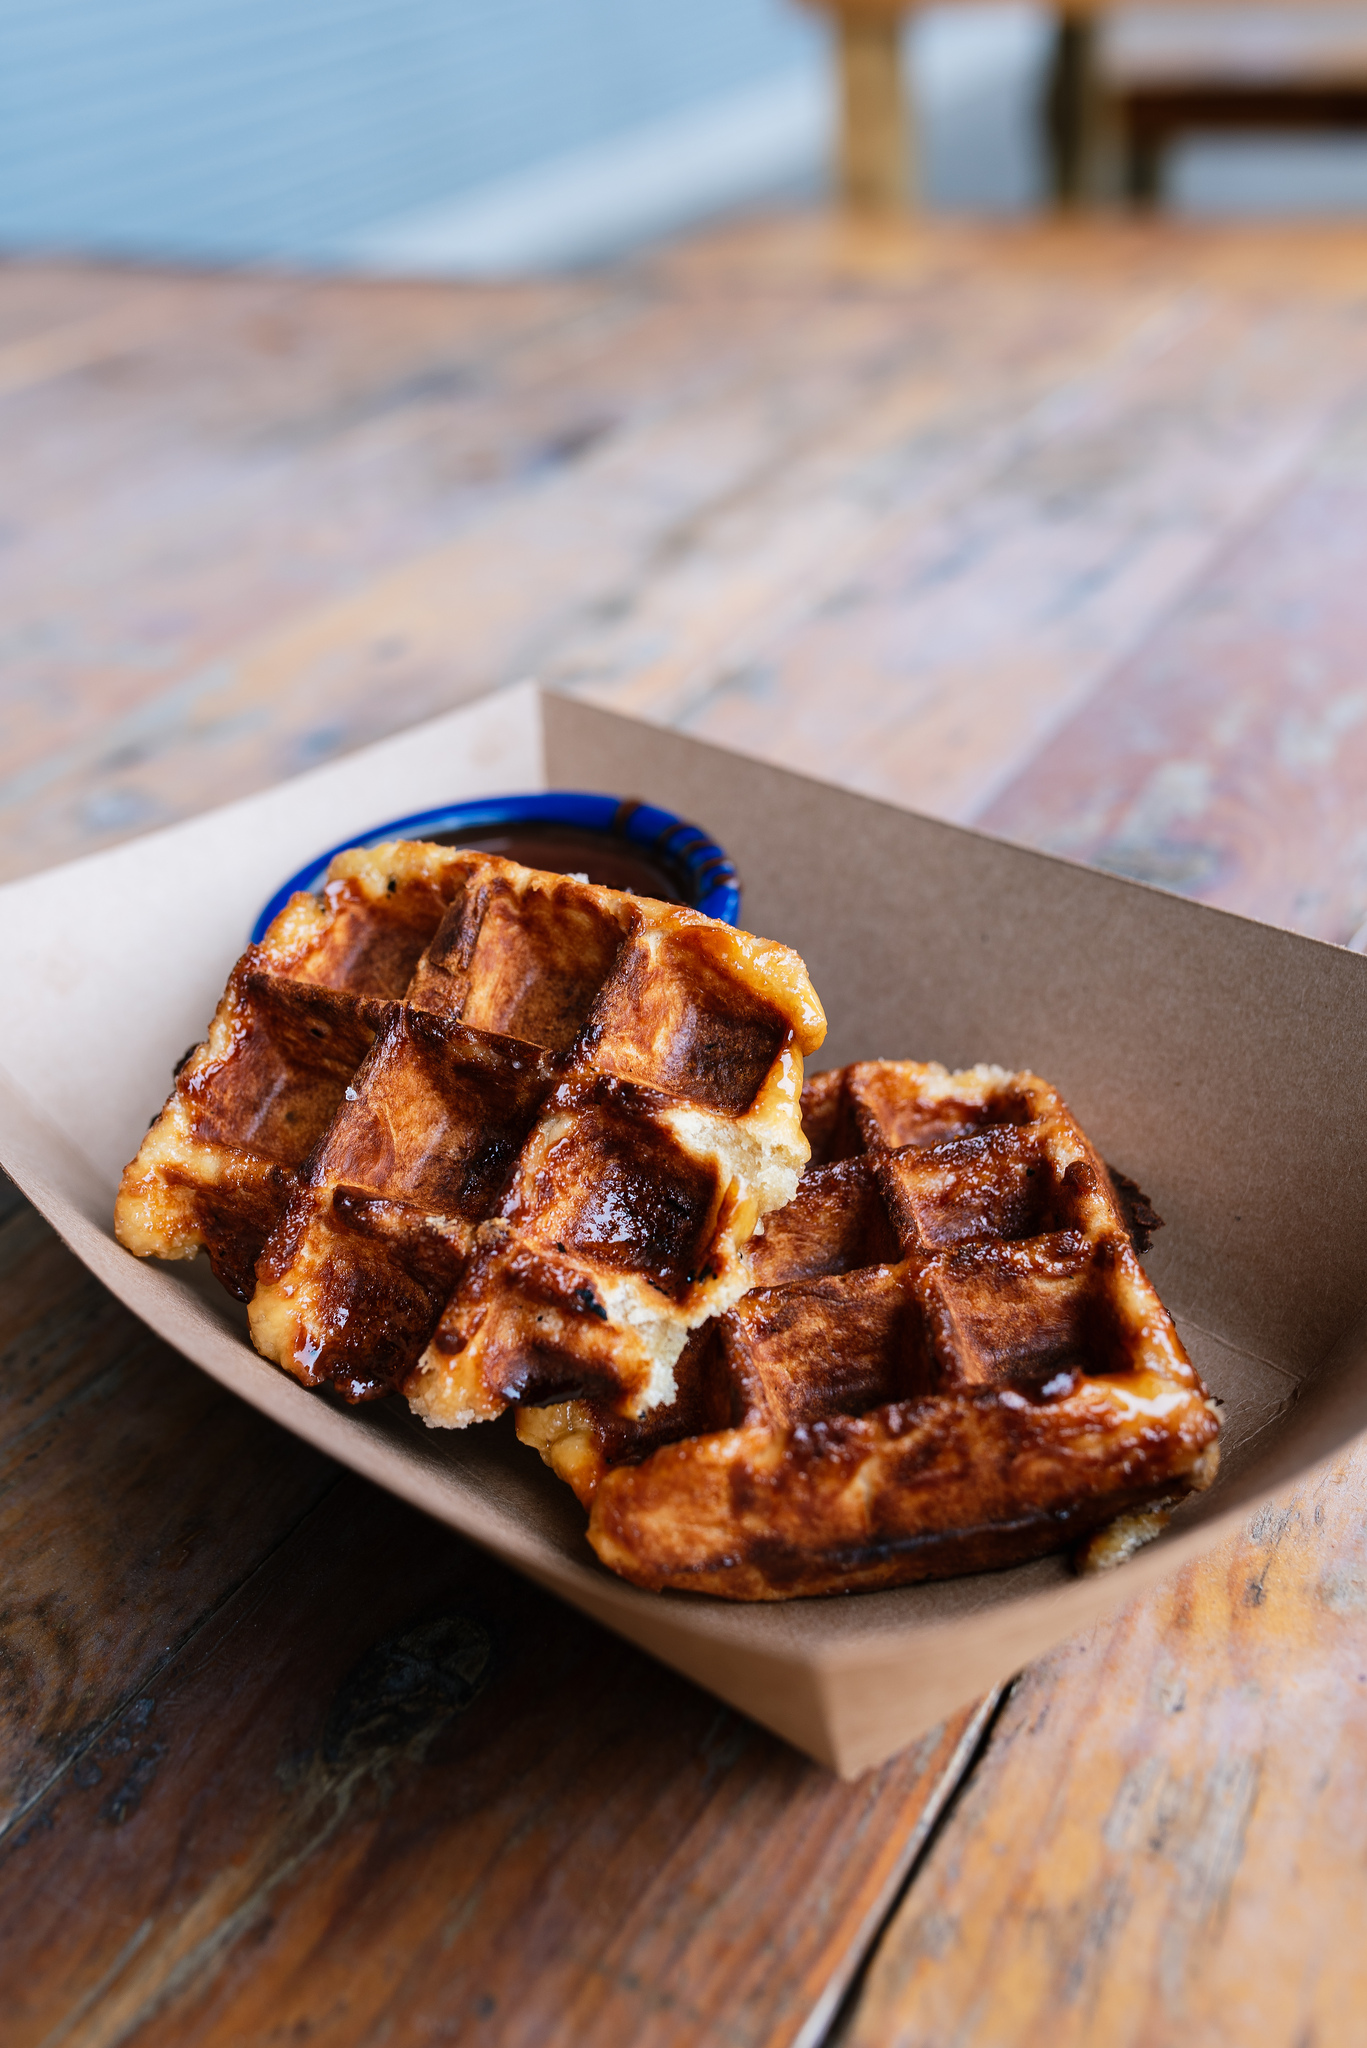 Liege Waffles - yeast waffles, sugar shell, dipping chocolate